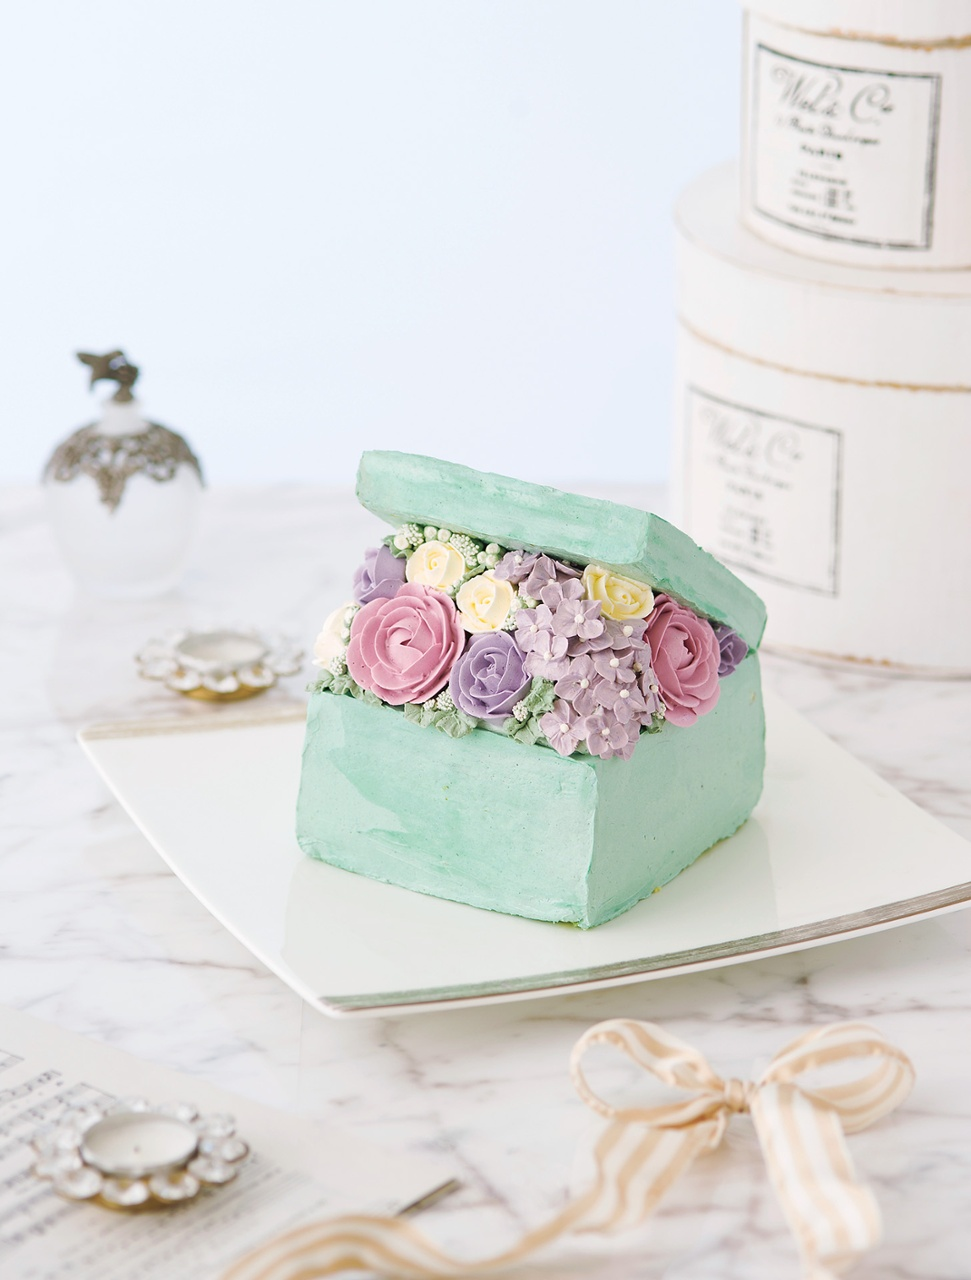 Elegant flower cake made with butter cream